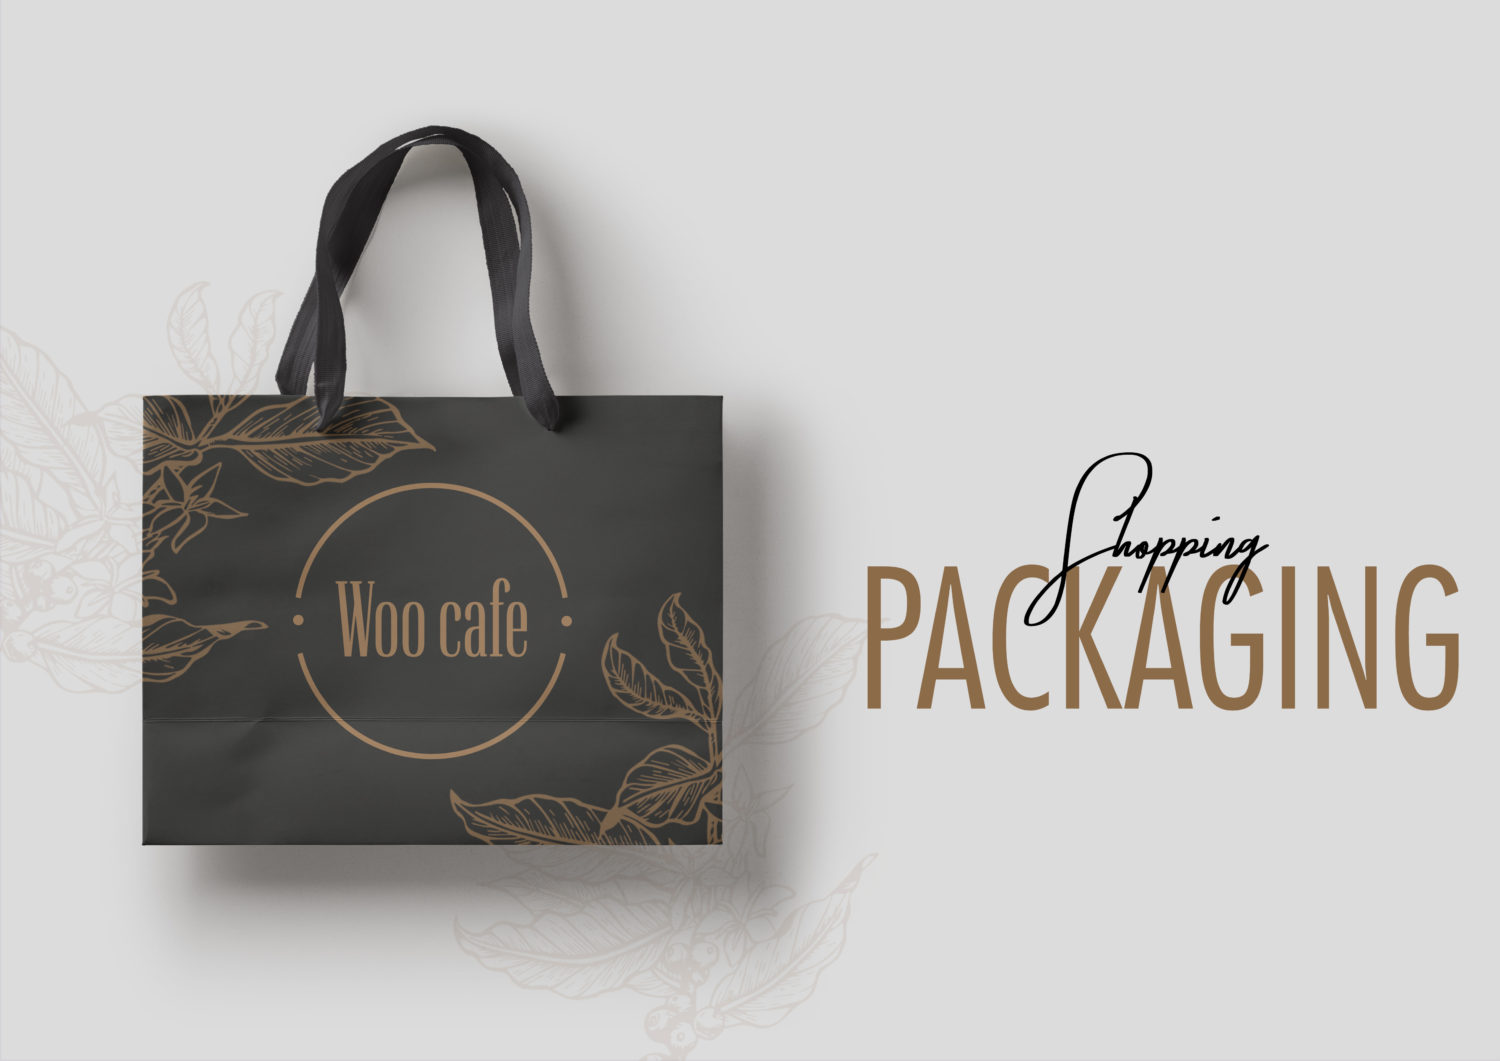 Mockup_shopping_packaging-e1551297963248